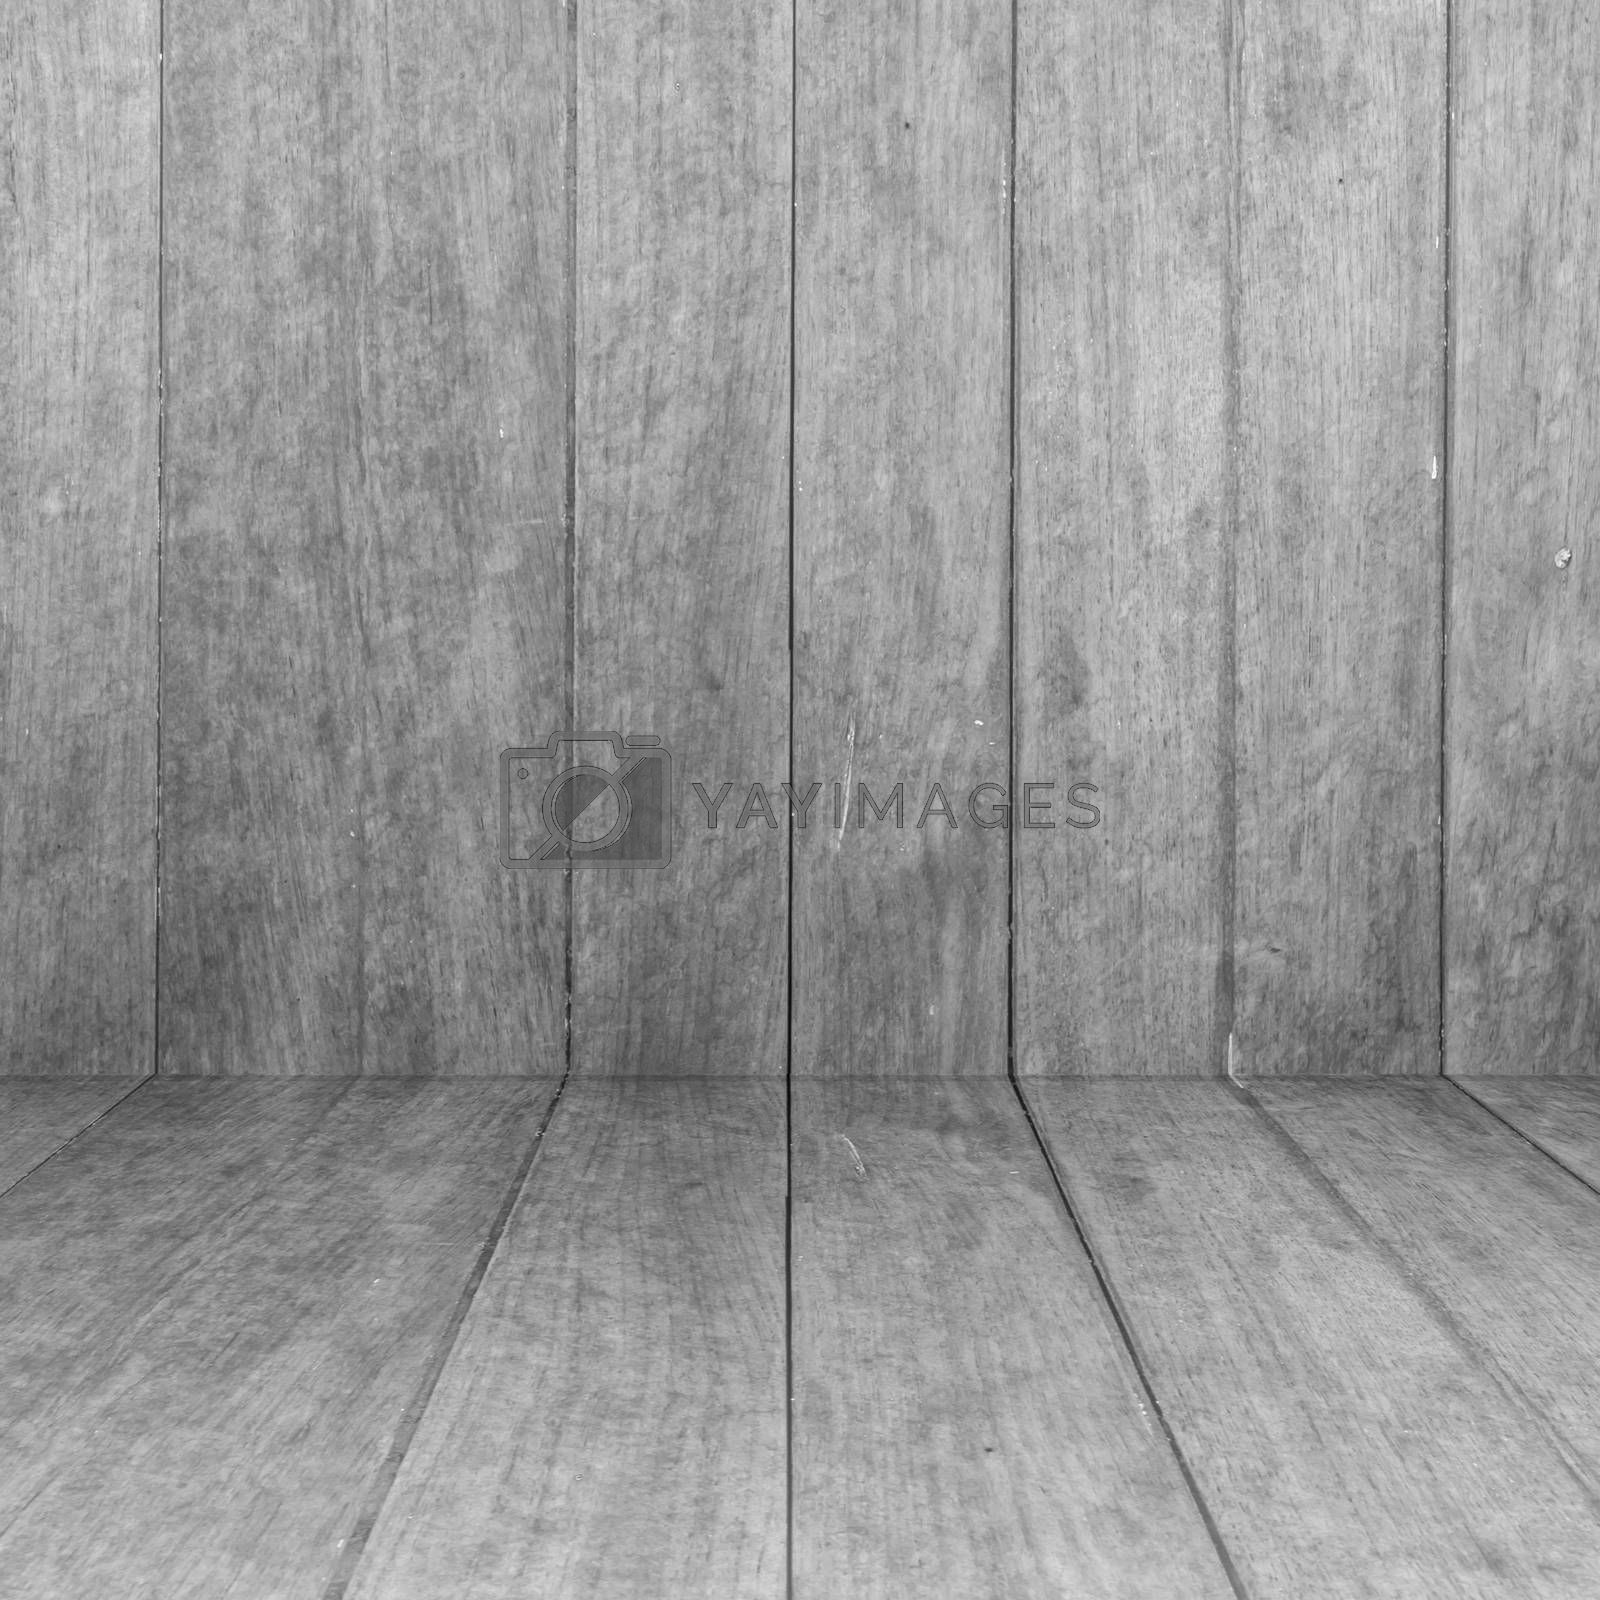 Perspective white wooden floor with wood panel background, stock photo